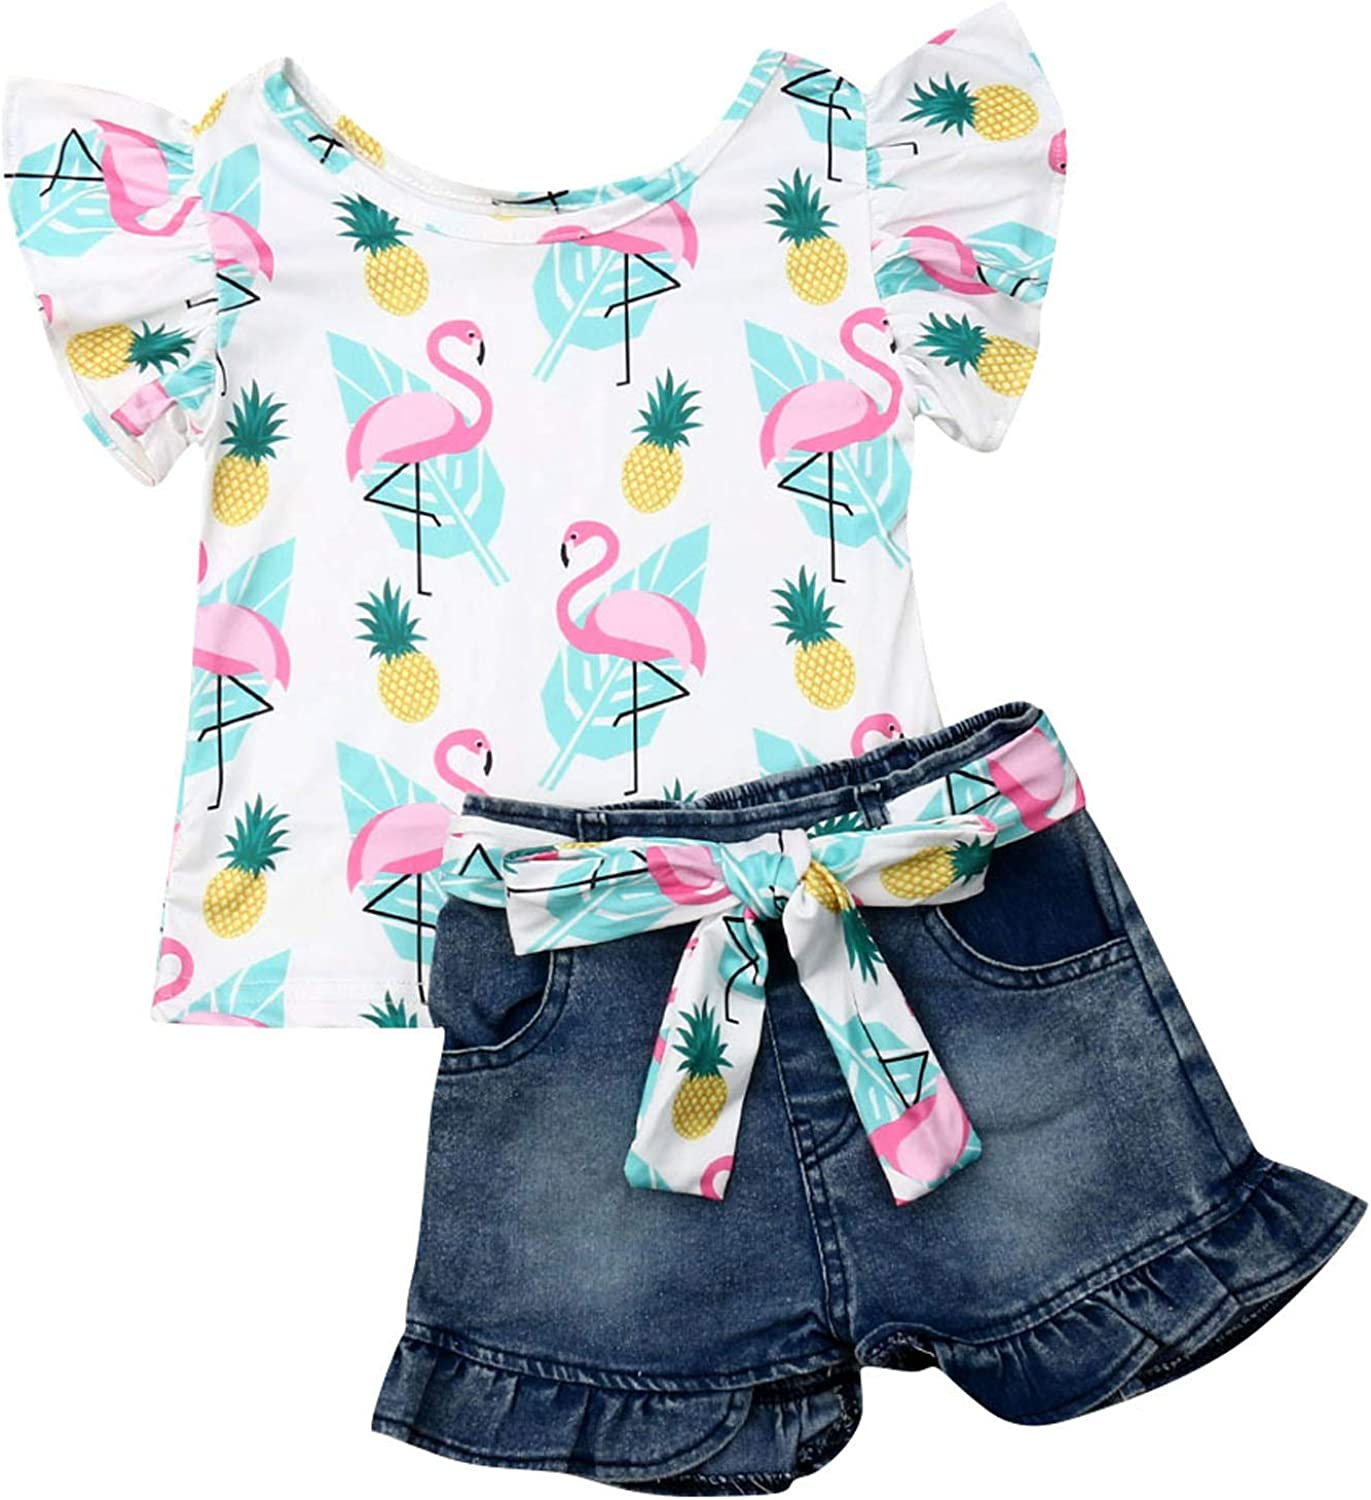 Toddler Baby Girls Jeans Shorts Outfits Floral Shirt Tops Ripped Denim Shorts Summer Clothes Set